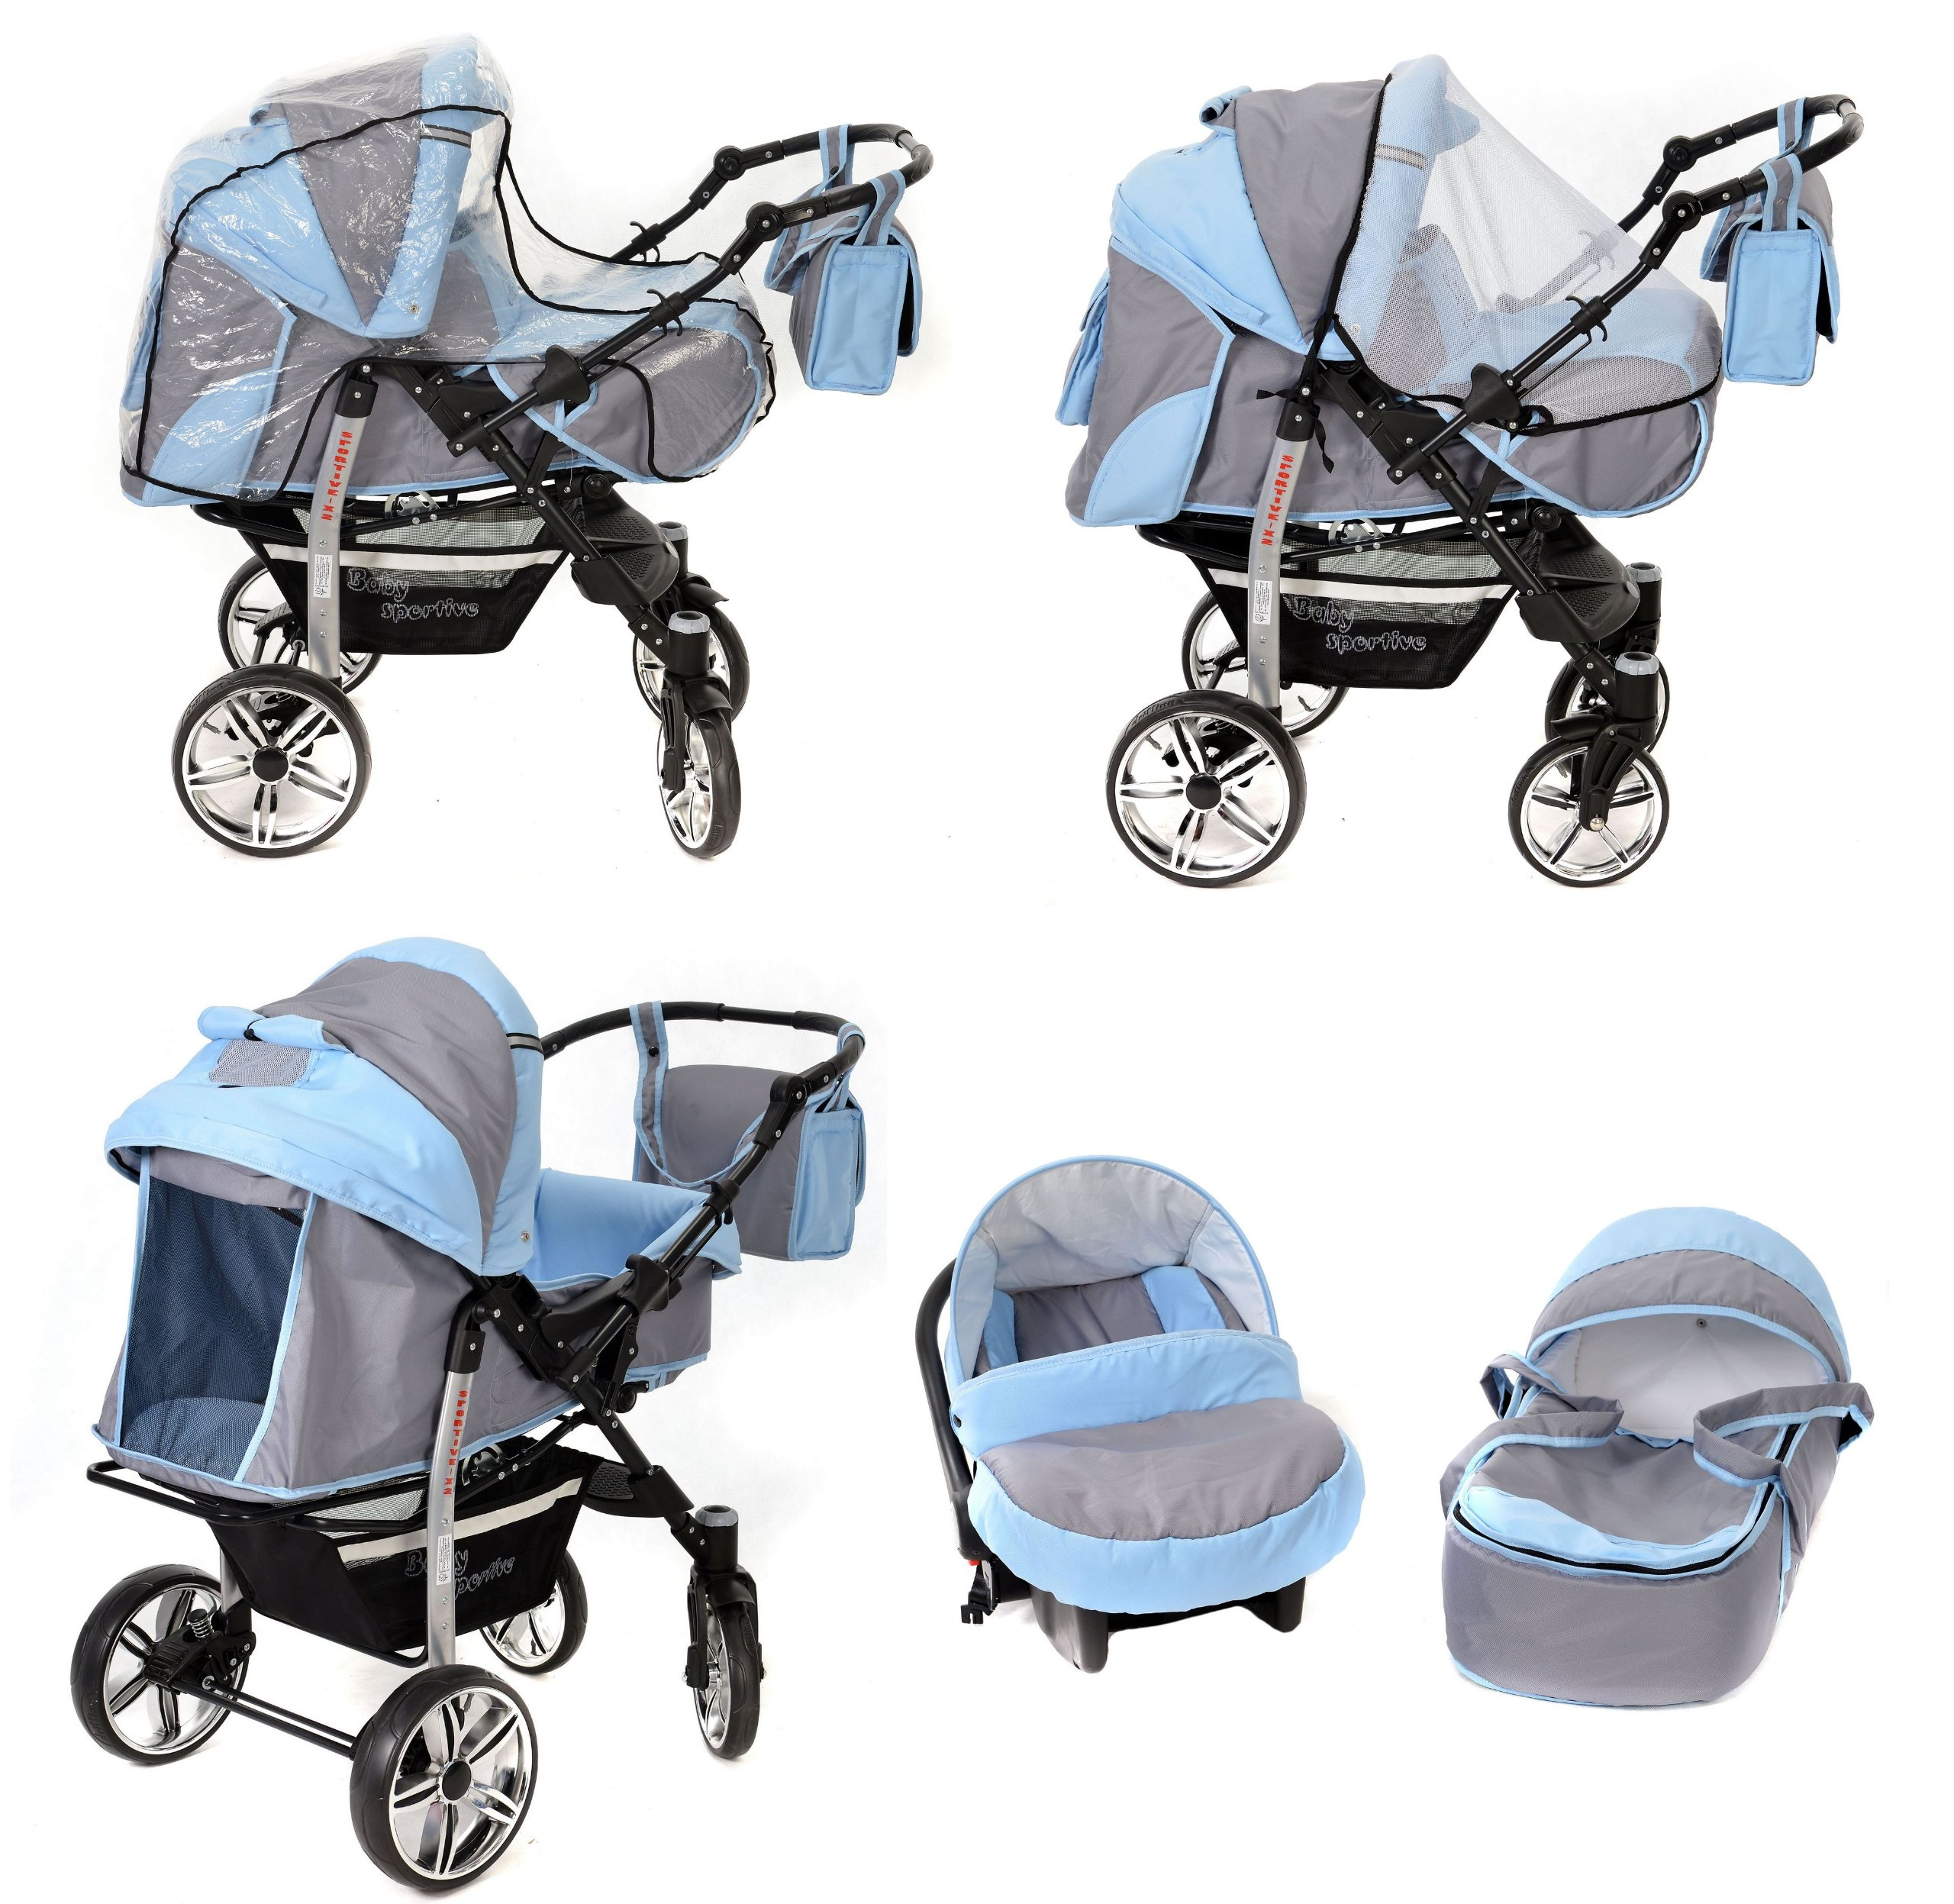 Sportive X2, 3-in-1 Travel System incl. Baby Pram with Swivel Wheels, Car Seat, Pushchair & Accessories (3-in-1 Travel System, Pale Grey & Blue)  3 in 1 Travel System All in One Set - Pram, Car Carrier Seat and Sport Buggy + Accessories: carrier bag, rain protection, mosquito net, changing mat, removable bottle holder and removable tray for your child's bits and pieces Suitable from birth, Easy Quick Folding System; Large storage basket; Turnable handle bar that allows to face or rear the drive direction; Quick release rear wheels for easy cleaning after muddy walks Front lockable 360o swivel wheels for manoeuvrability , Small sized when folded, fits into many small car trunks, Carry-cot with a removable hood, Reflective elements for better visibility 7